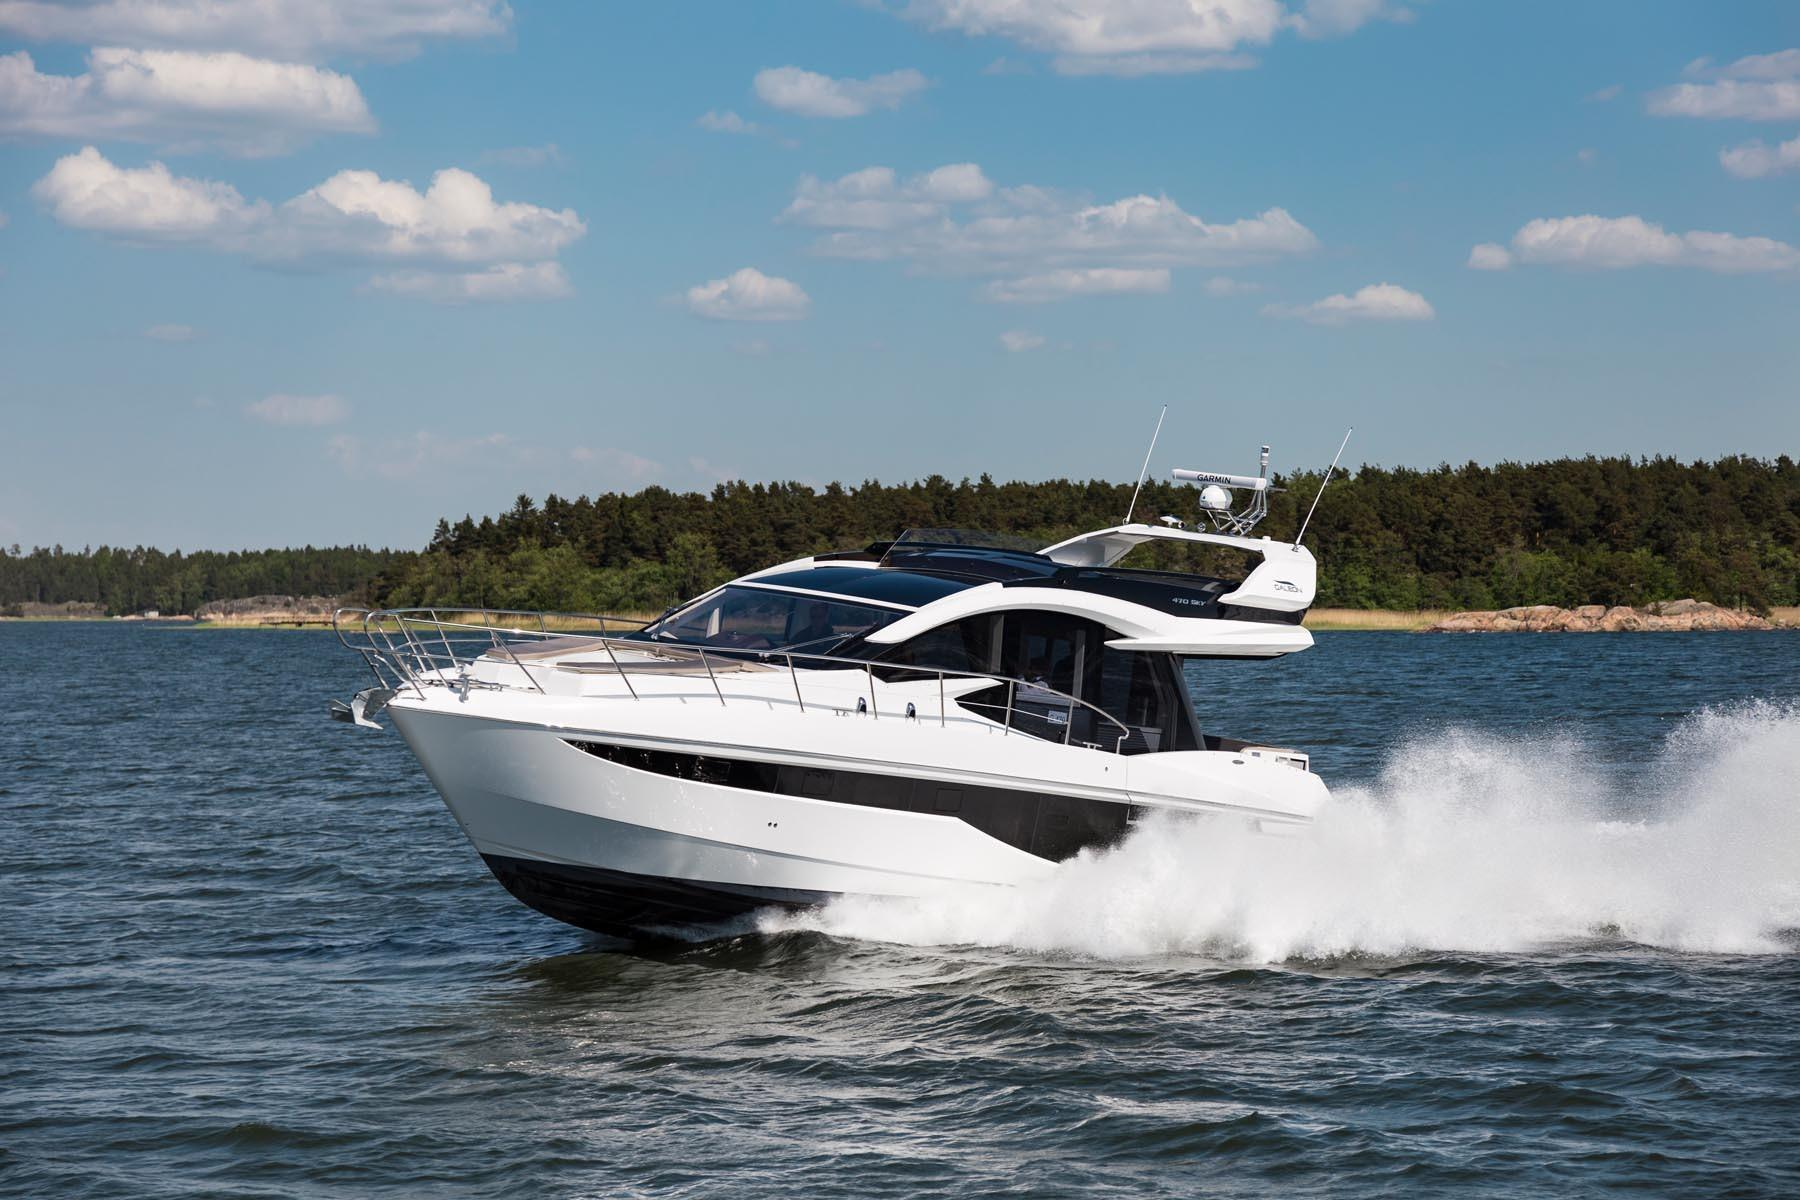 Thumbnail 1 for 2021 Galeon 470 SKY